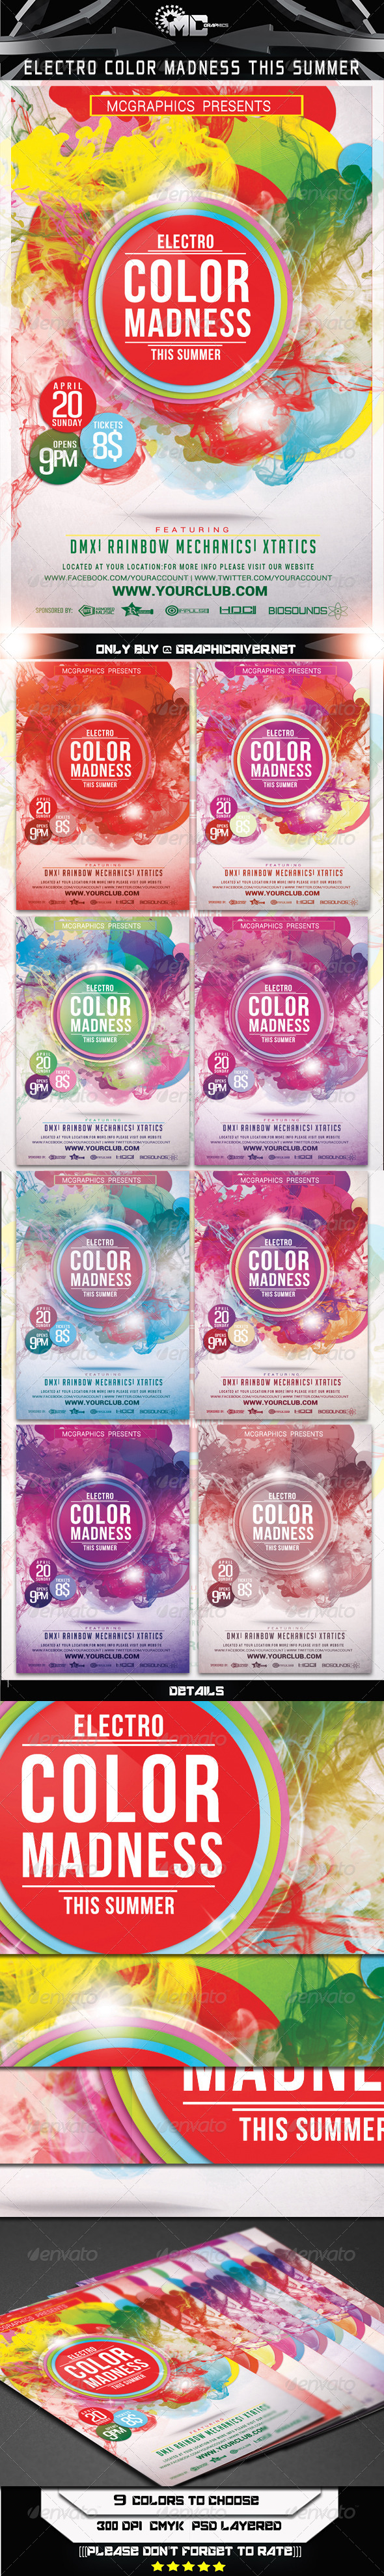 Electro Color Madness This Summer Flyer Template